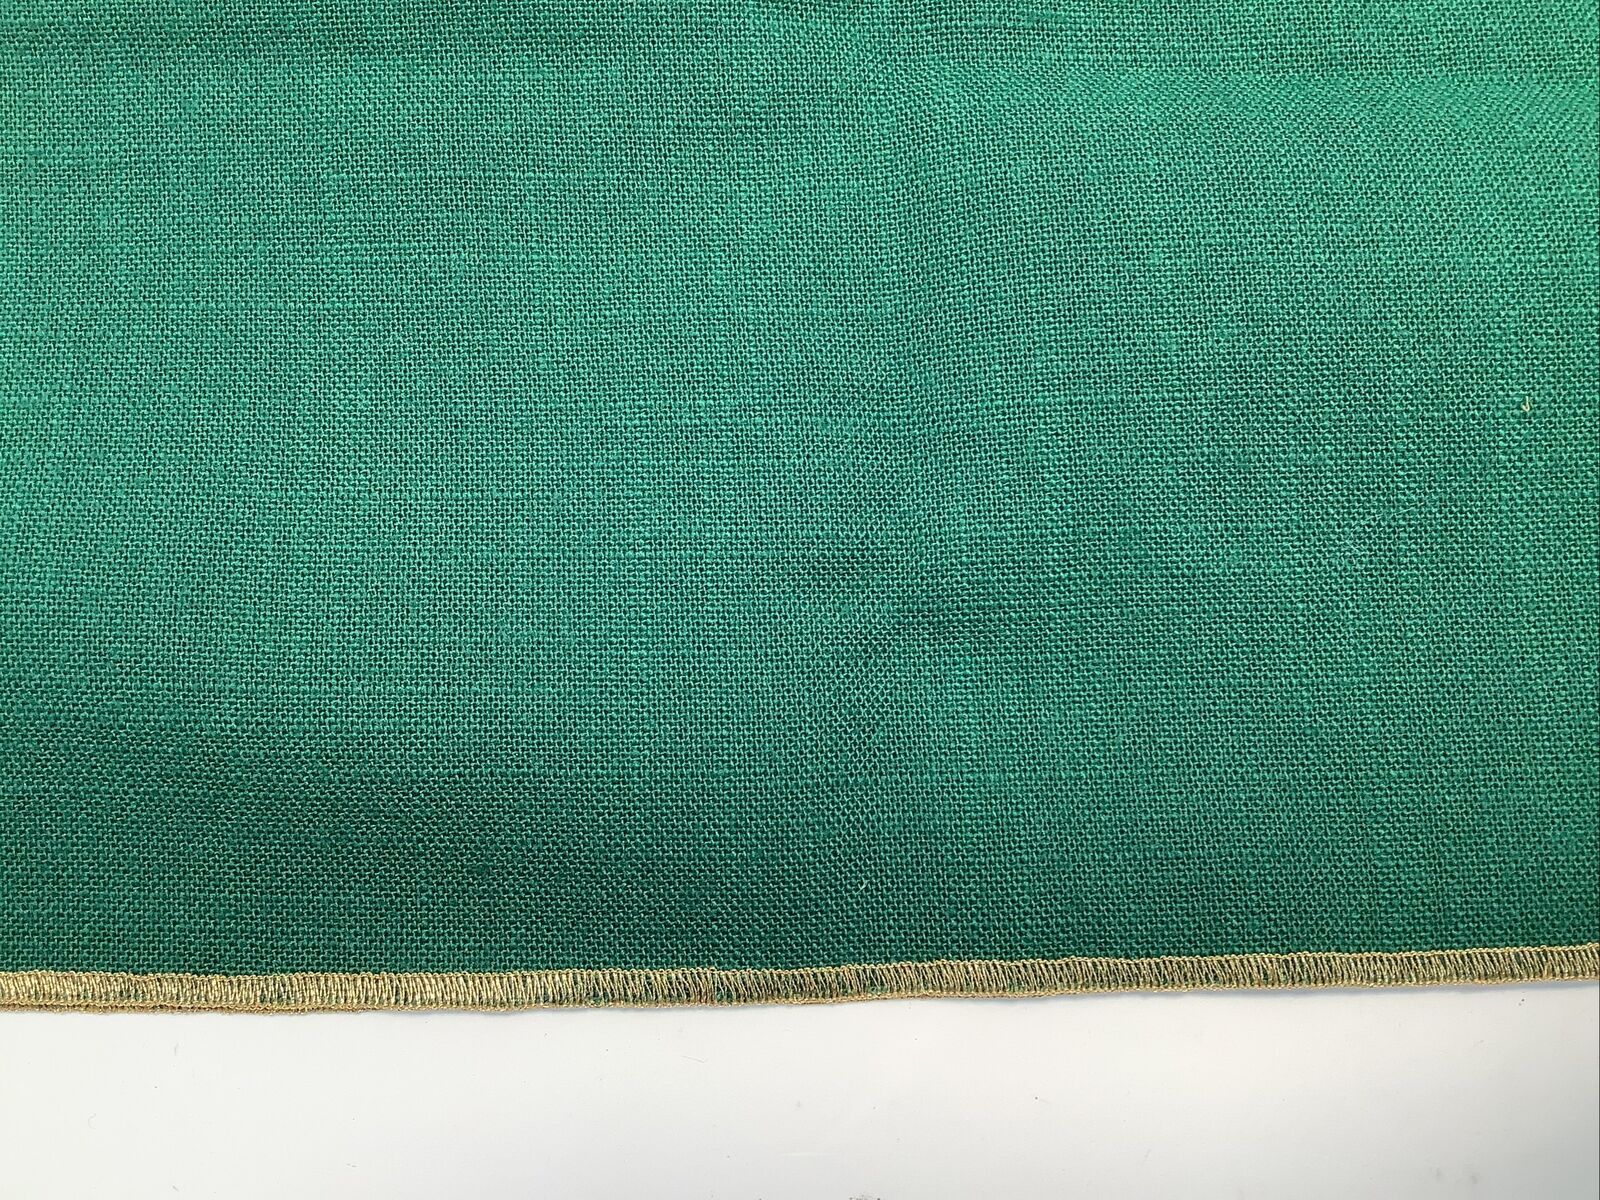 Green Napkin With Gold Stitched Borders